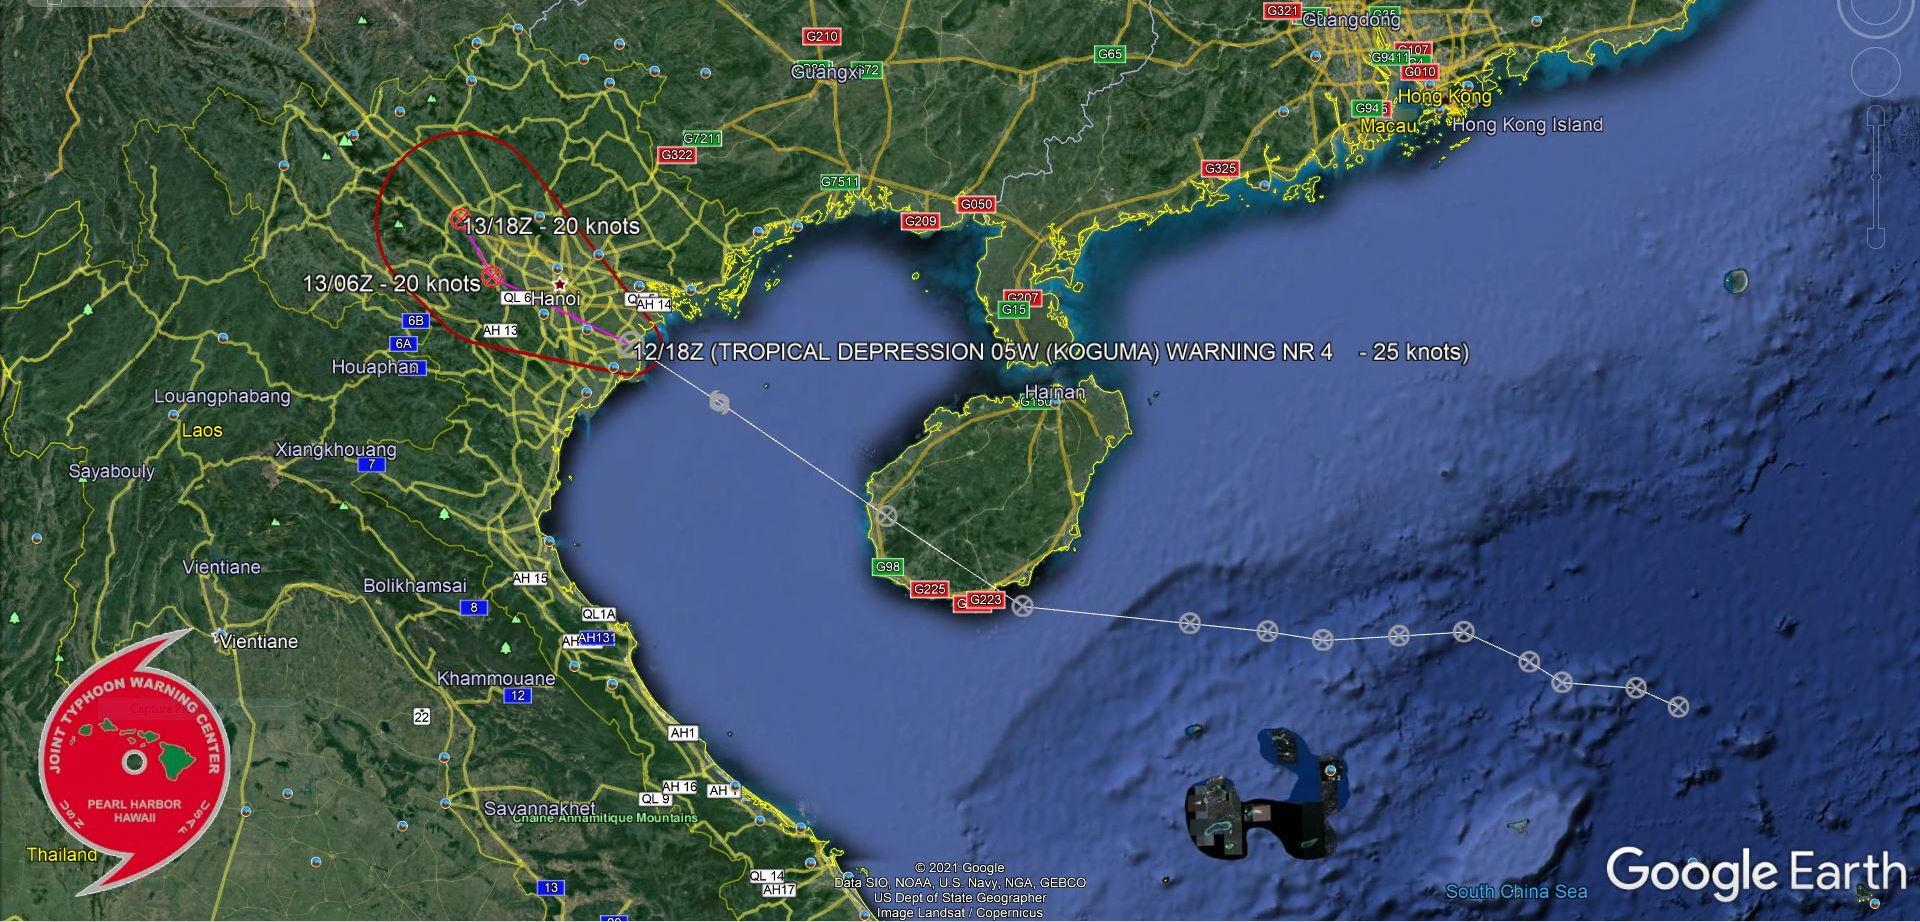 05W BRIEFLY REACHED 35KNOTS OVER THE GULF OF TONKIN AND WAS NAMED KOGUMA.